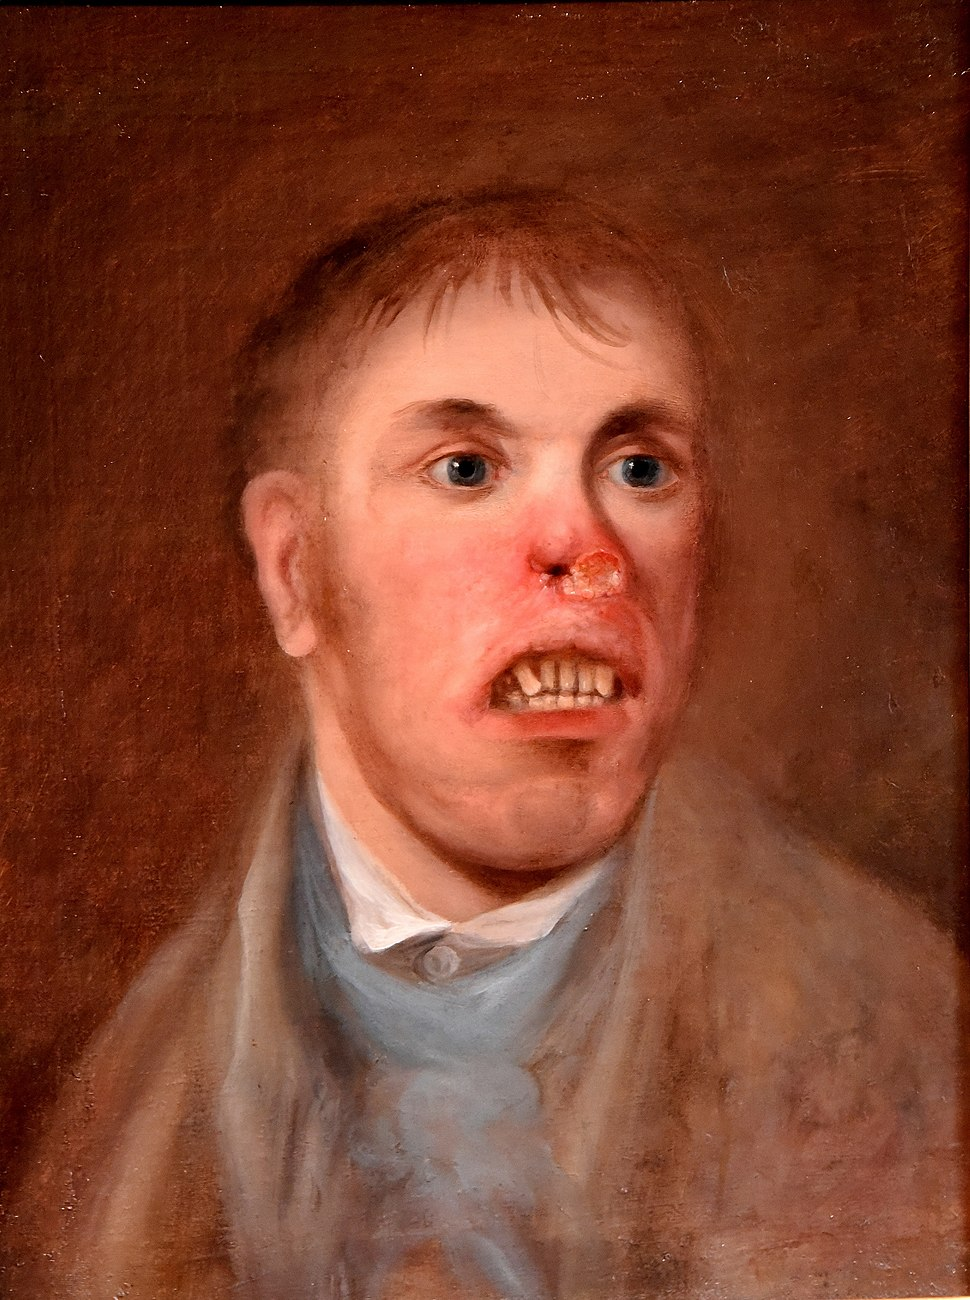 Portrait of Mr. J. Kay, afflicted with a rodent disease. Unknown artist, c. 1820 CE. The Wellcome Collection, London